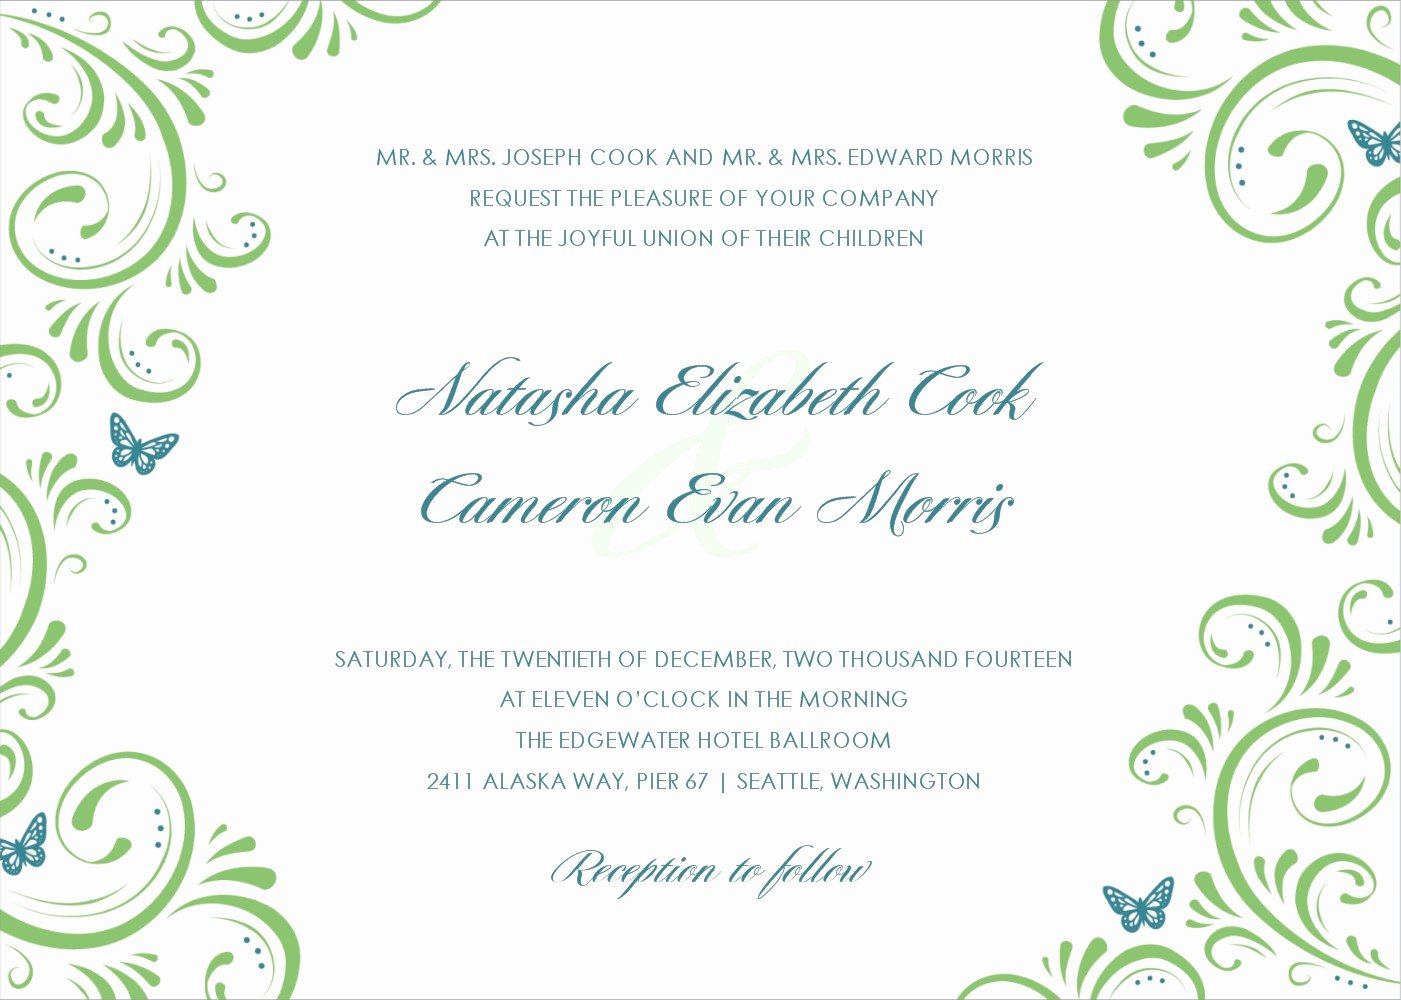 Wedding Invitations Template Free Luxury Applying the Wedding Planning Templates